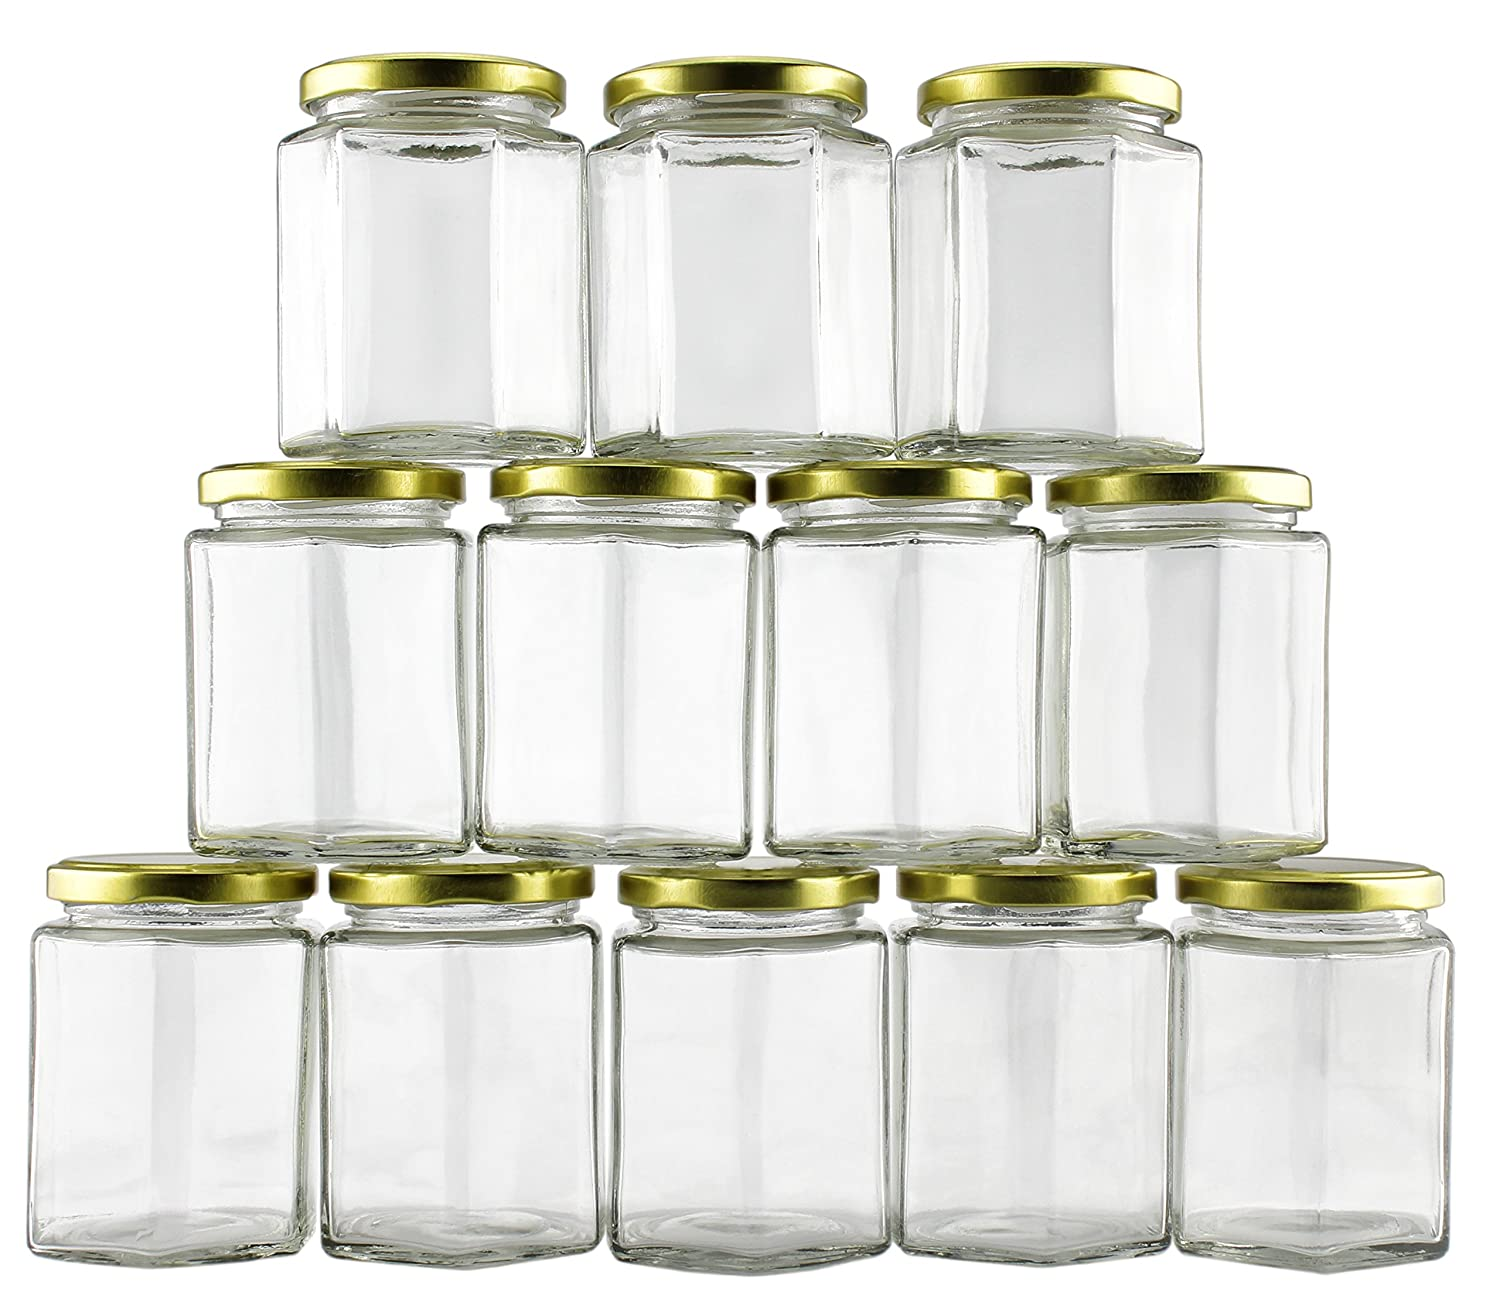 9oz Hexagon Clear Glass Jars With Gold Metal Lids (12 Pack); Great For Weddings, Spices and Gifts; Perfect For DIY Projects, Party Favors and organizing kitchen, office and craft rooms. Cornucopia Brands